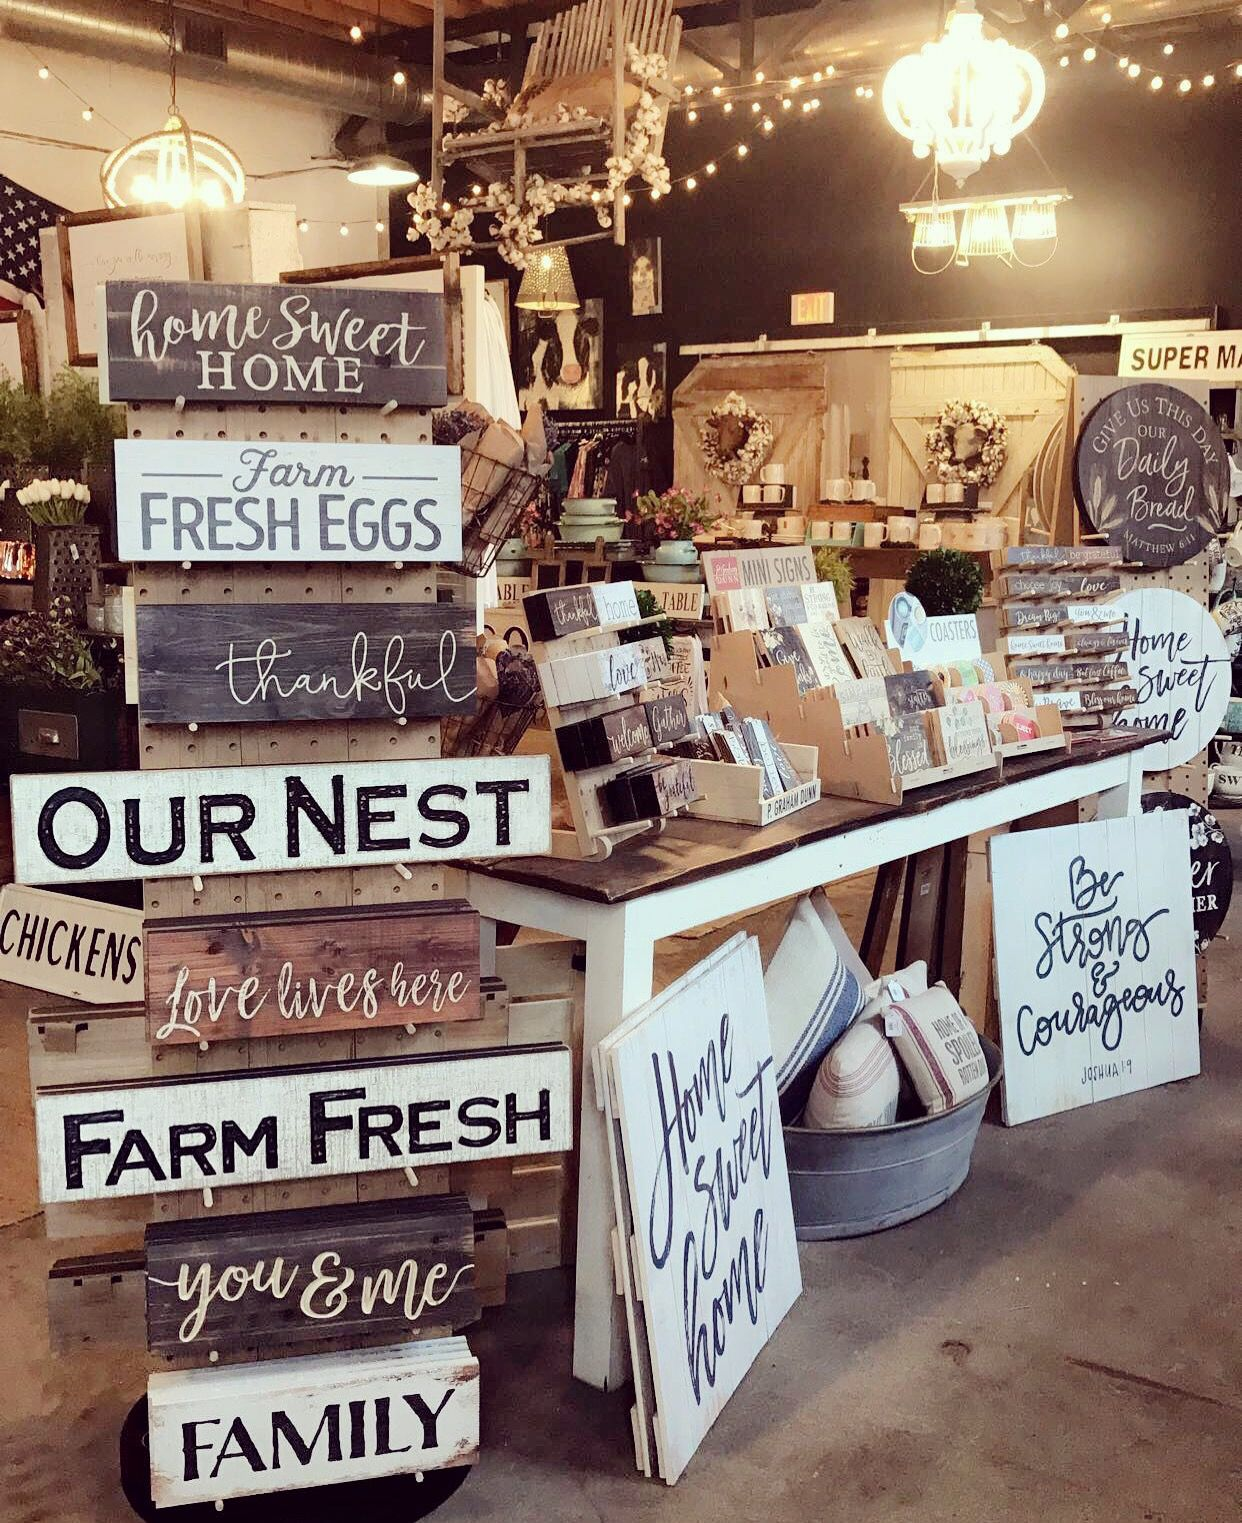 Pin by ashley hall on styling and display pinterest for How to display wood signs at craft show